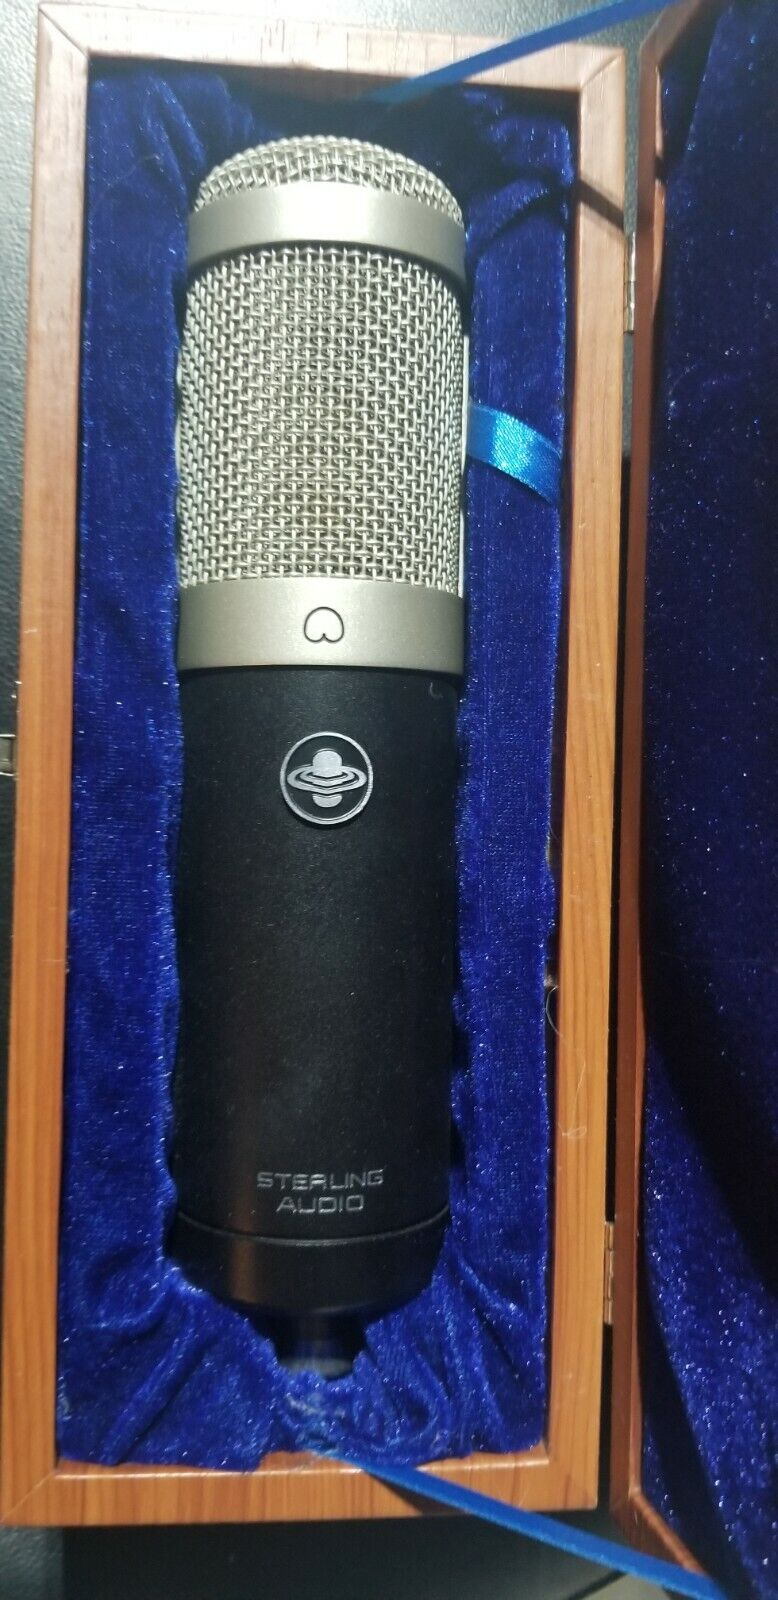 Sterling Audio ST77 Condenser Wired Professional Microphone. Buy it now for 190.00